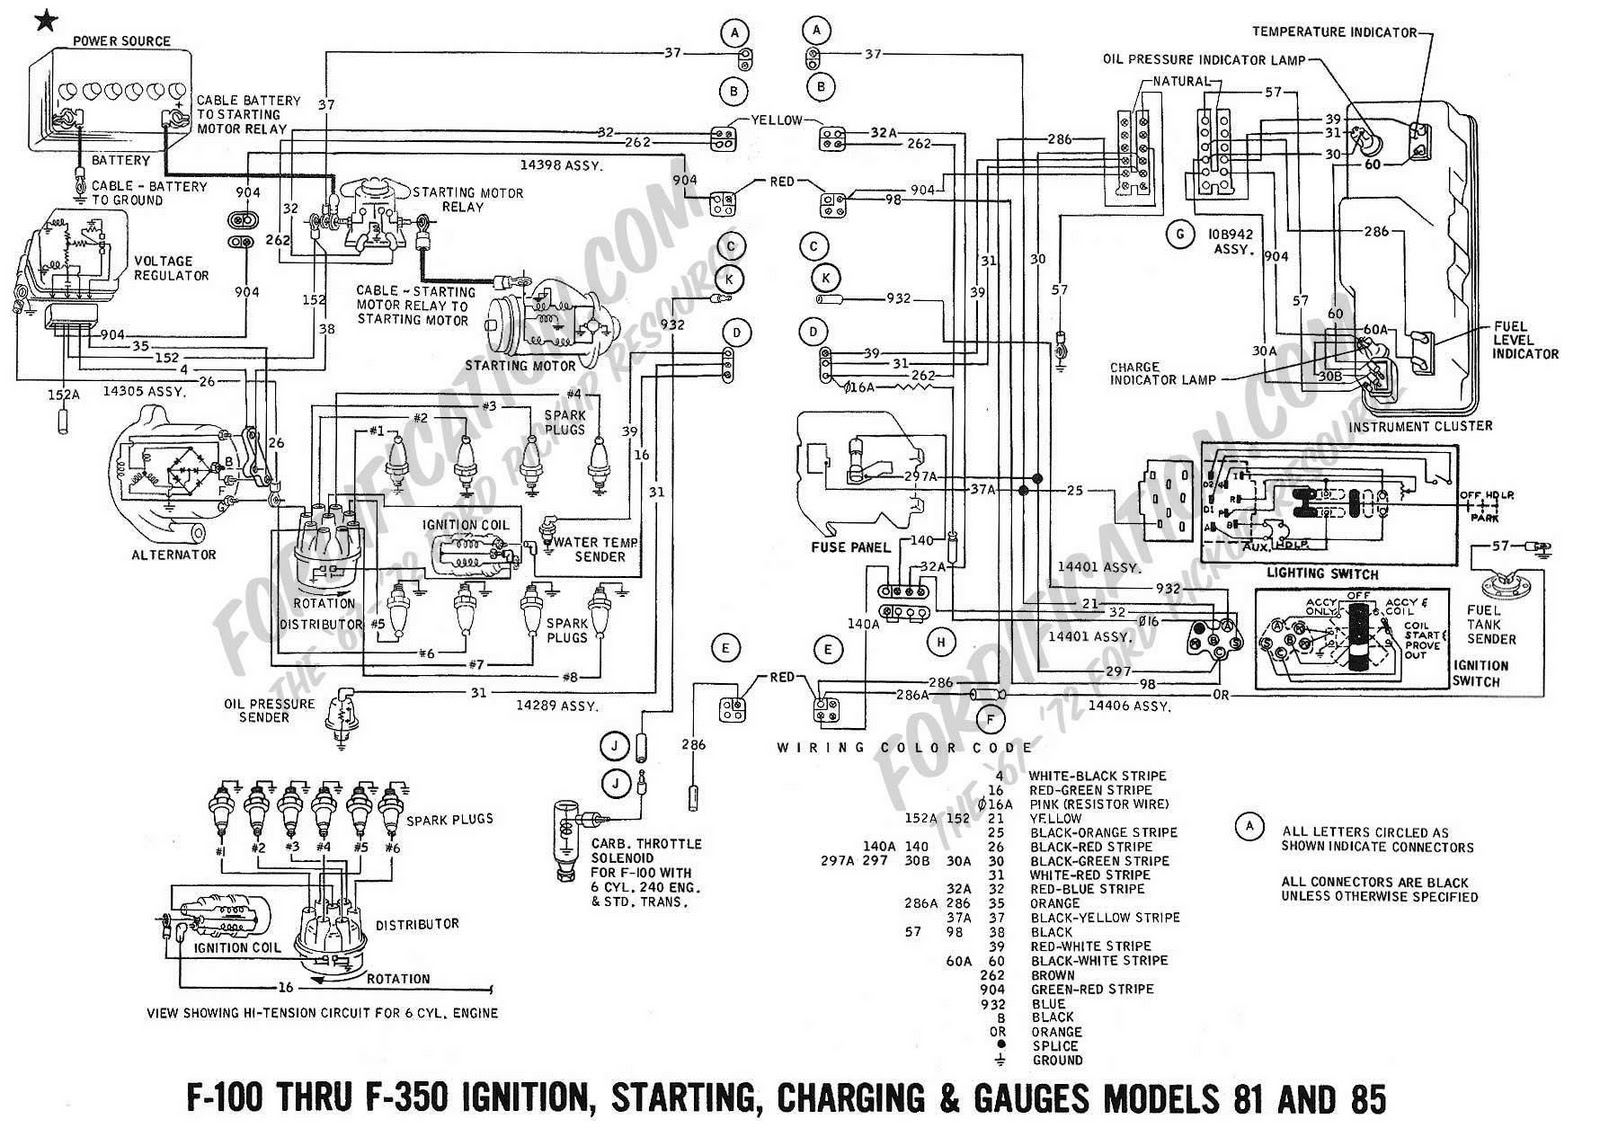 1970 ford wiring diagram wiring diagram schemes 1977 ford bronco wiring  diagram 1970 ford f100 charging